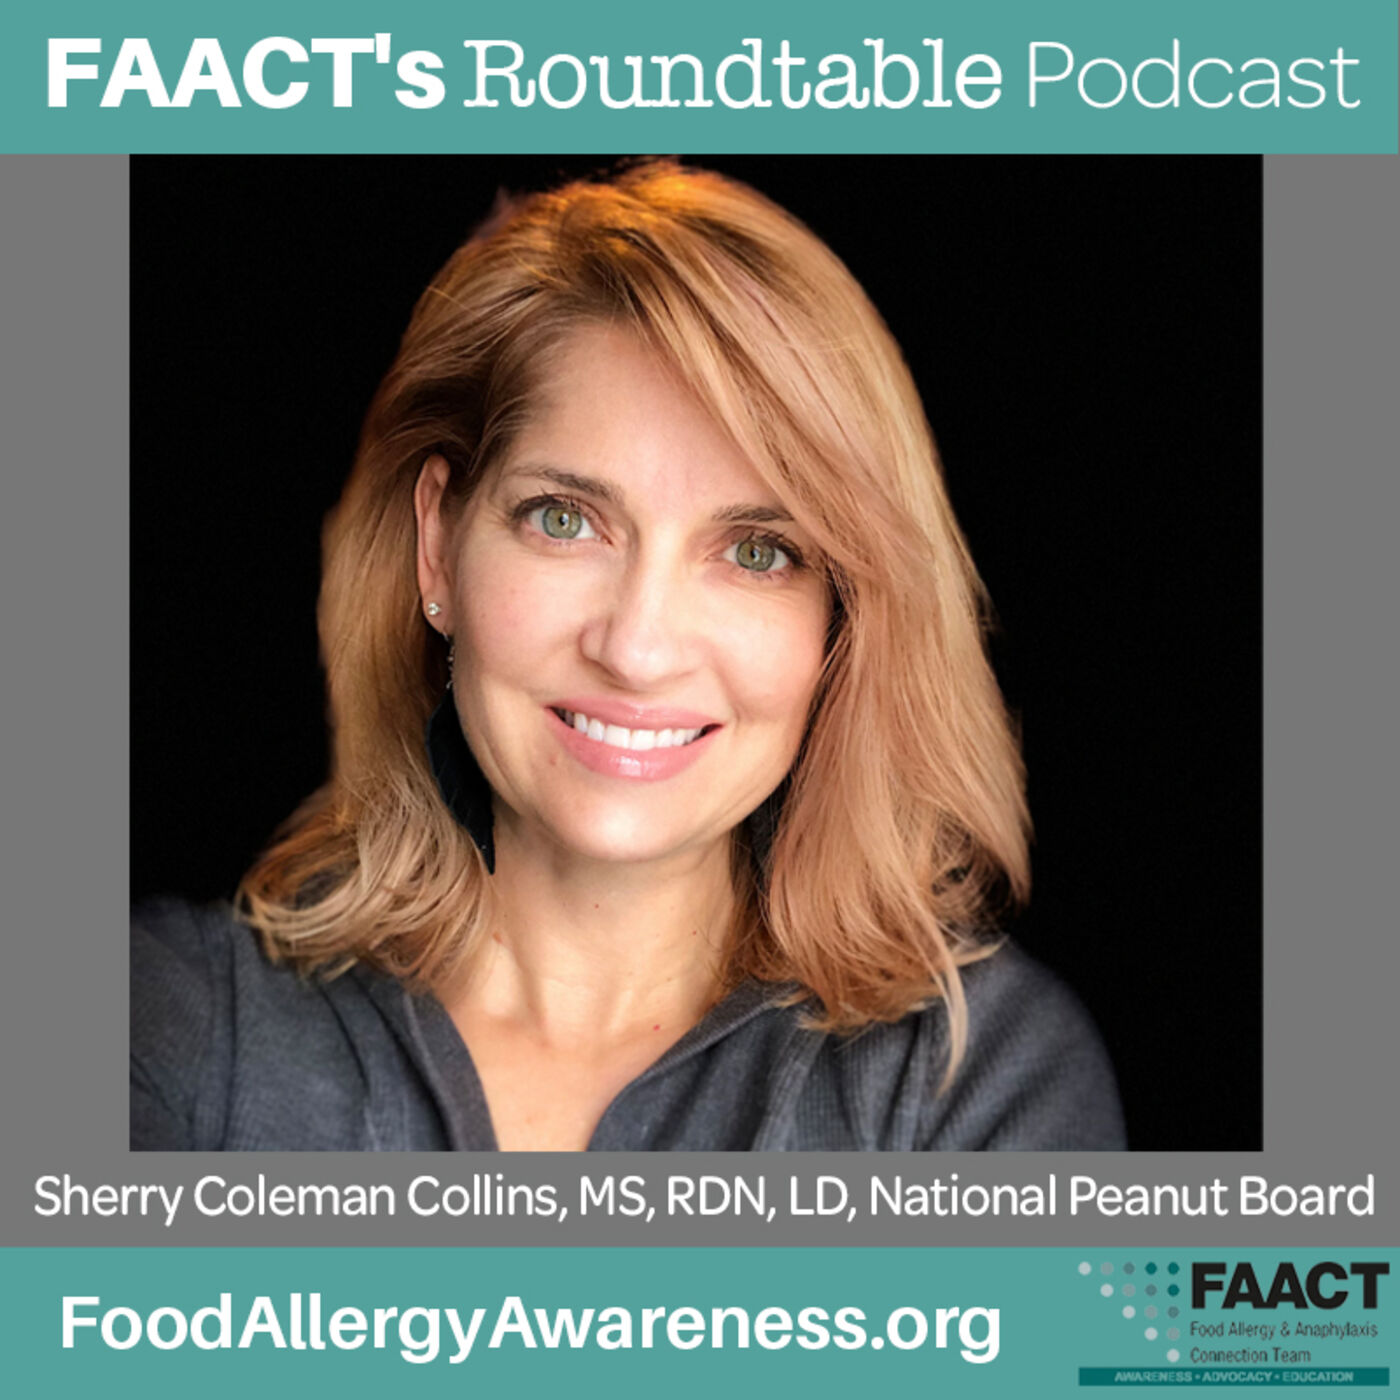 Ep. 55: Allergy News - Updated Dietary Guidelines for Americans